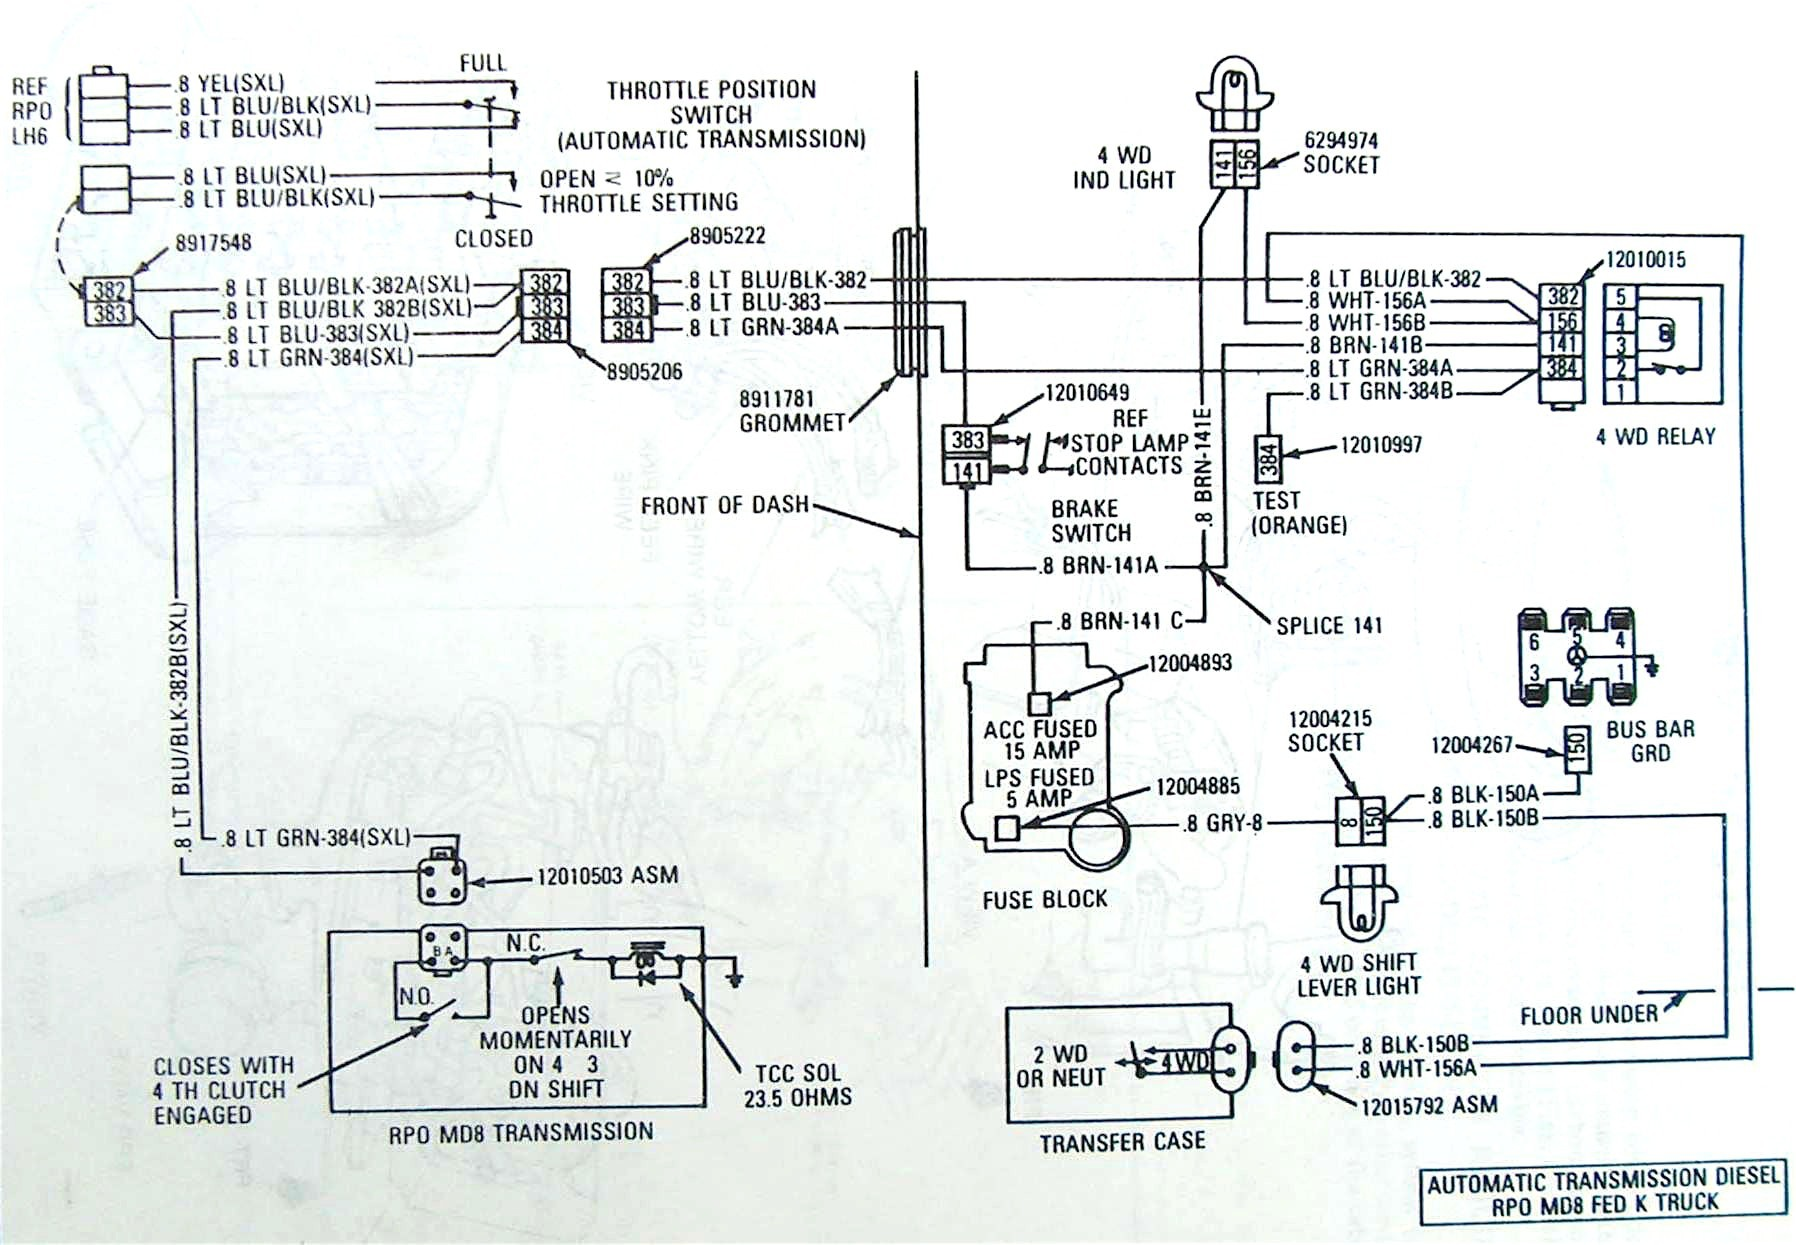 4l60e Transmission Wiring Diagram Best 700r4 Troubleshooting 4l60e Transmission Wiring Diagram Best 700r4 Troubleshooting Image Collections Free